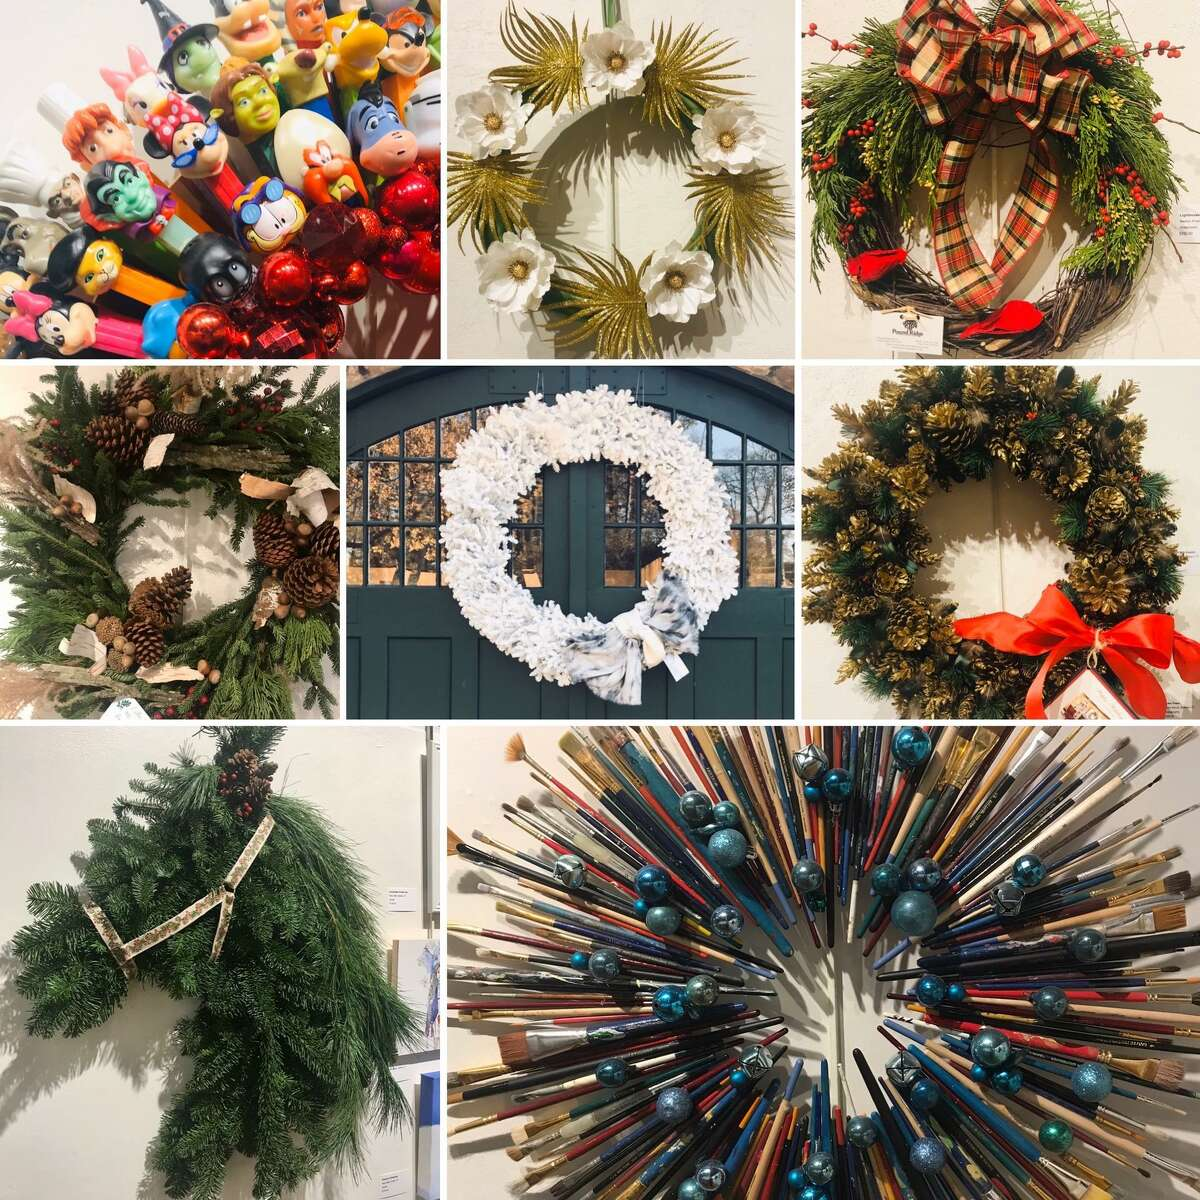 The Carriage Barn Art Center's 5th annual wreath auction and small works exhibit, Deck The Walls, opens Nov. 29, the first Sunday after Thanksgiving. The exhibit is opening on the same day as the Carriage Barn's Artists Sunday event.